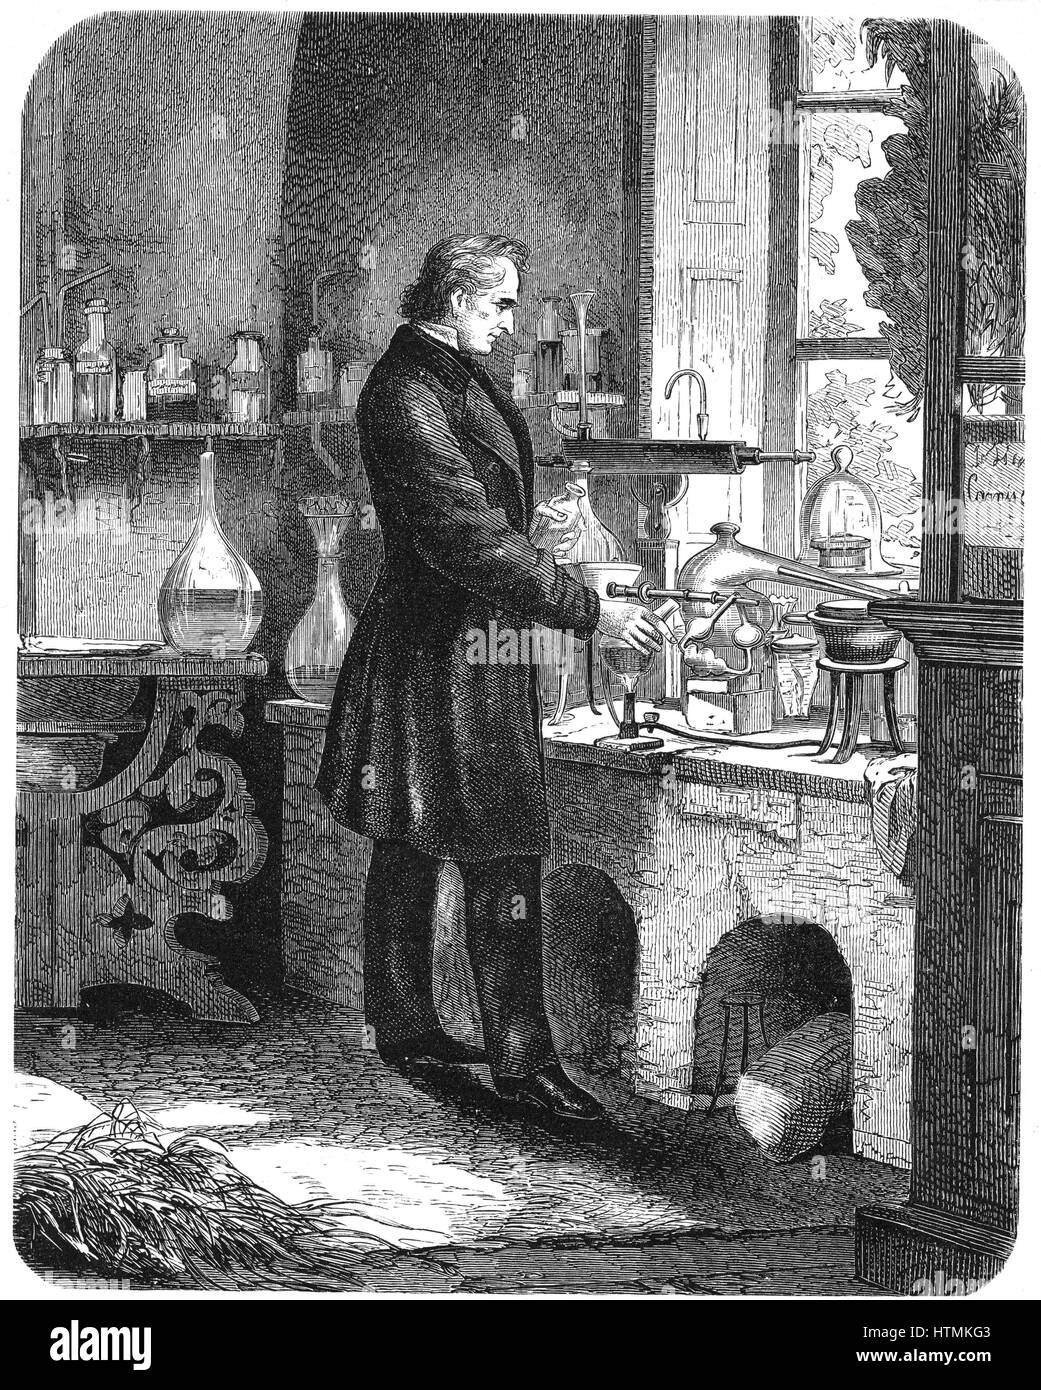 Justus von Liebig (1803-1873) German chemist, at work in his laboratory. Engraving from 'The Popular Educator', - Stock Image